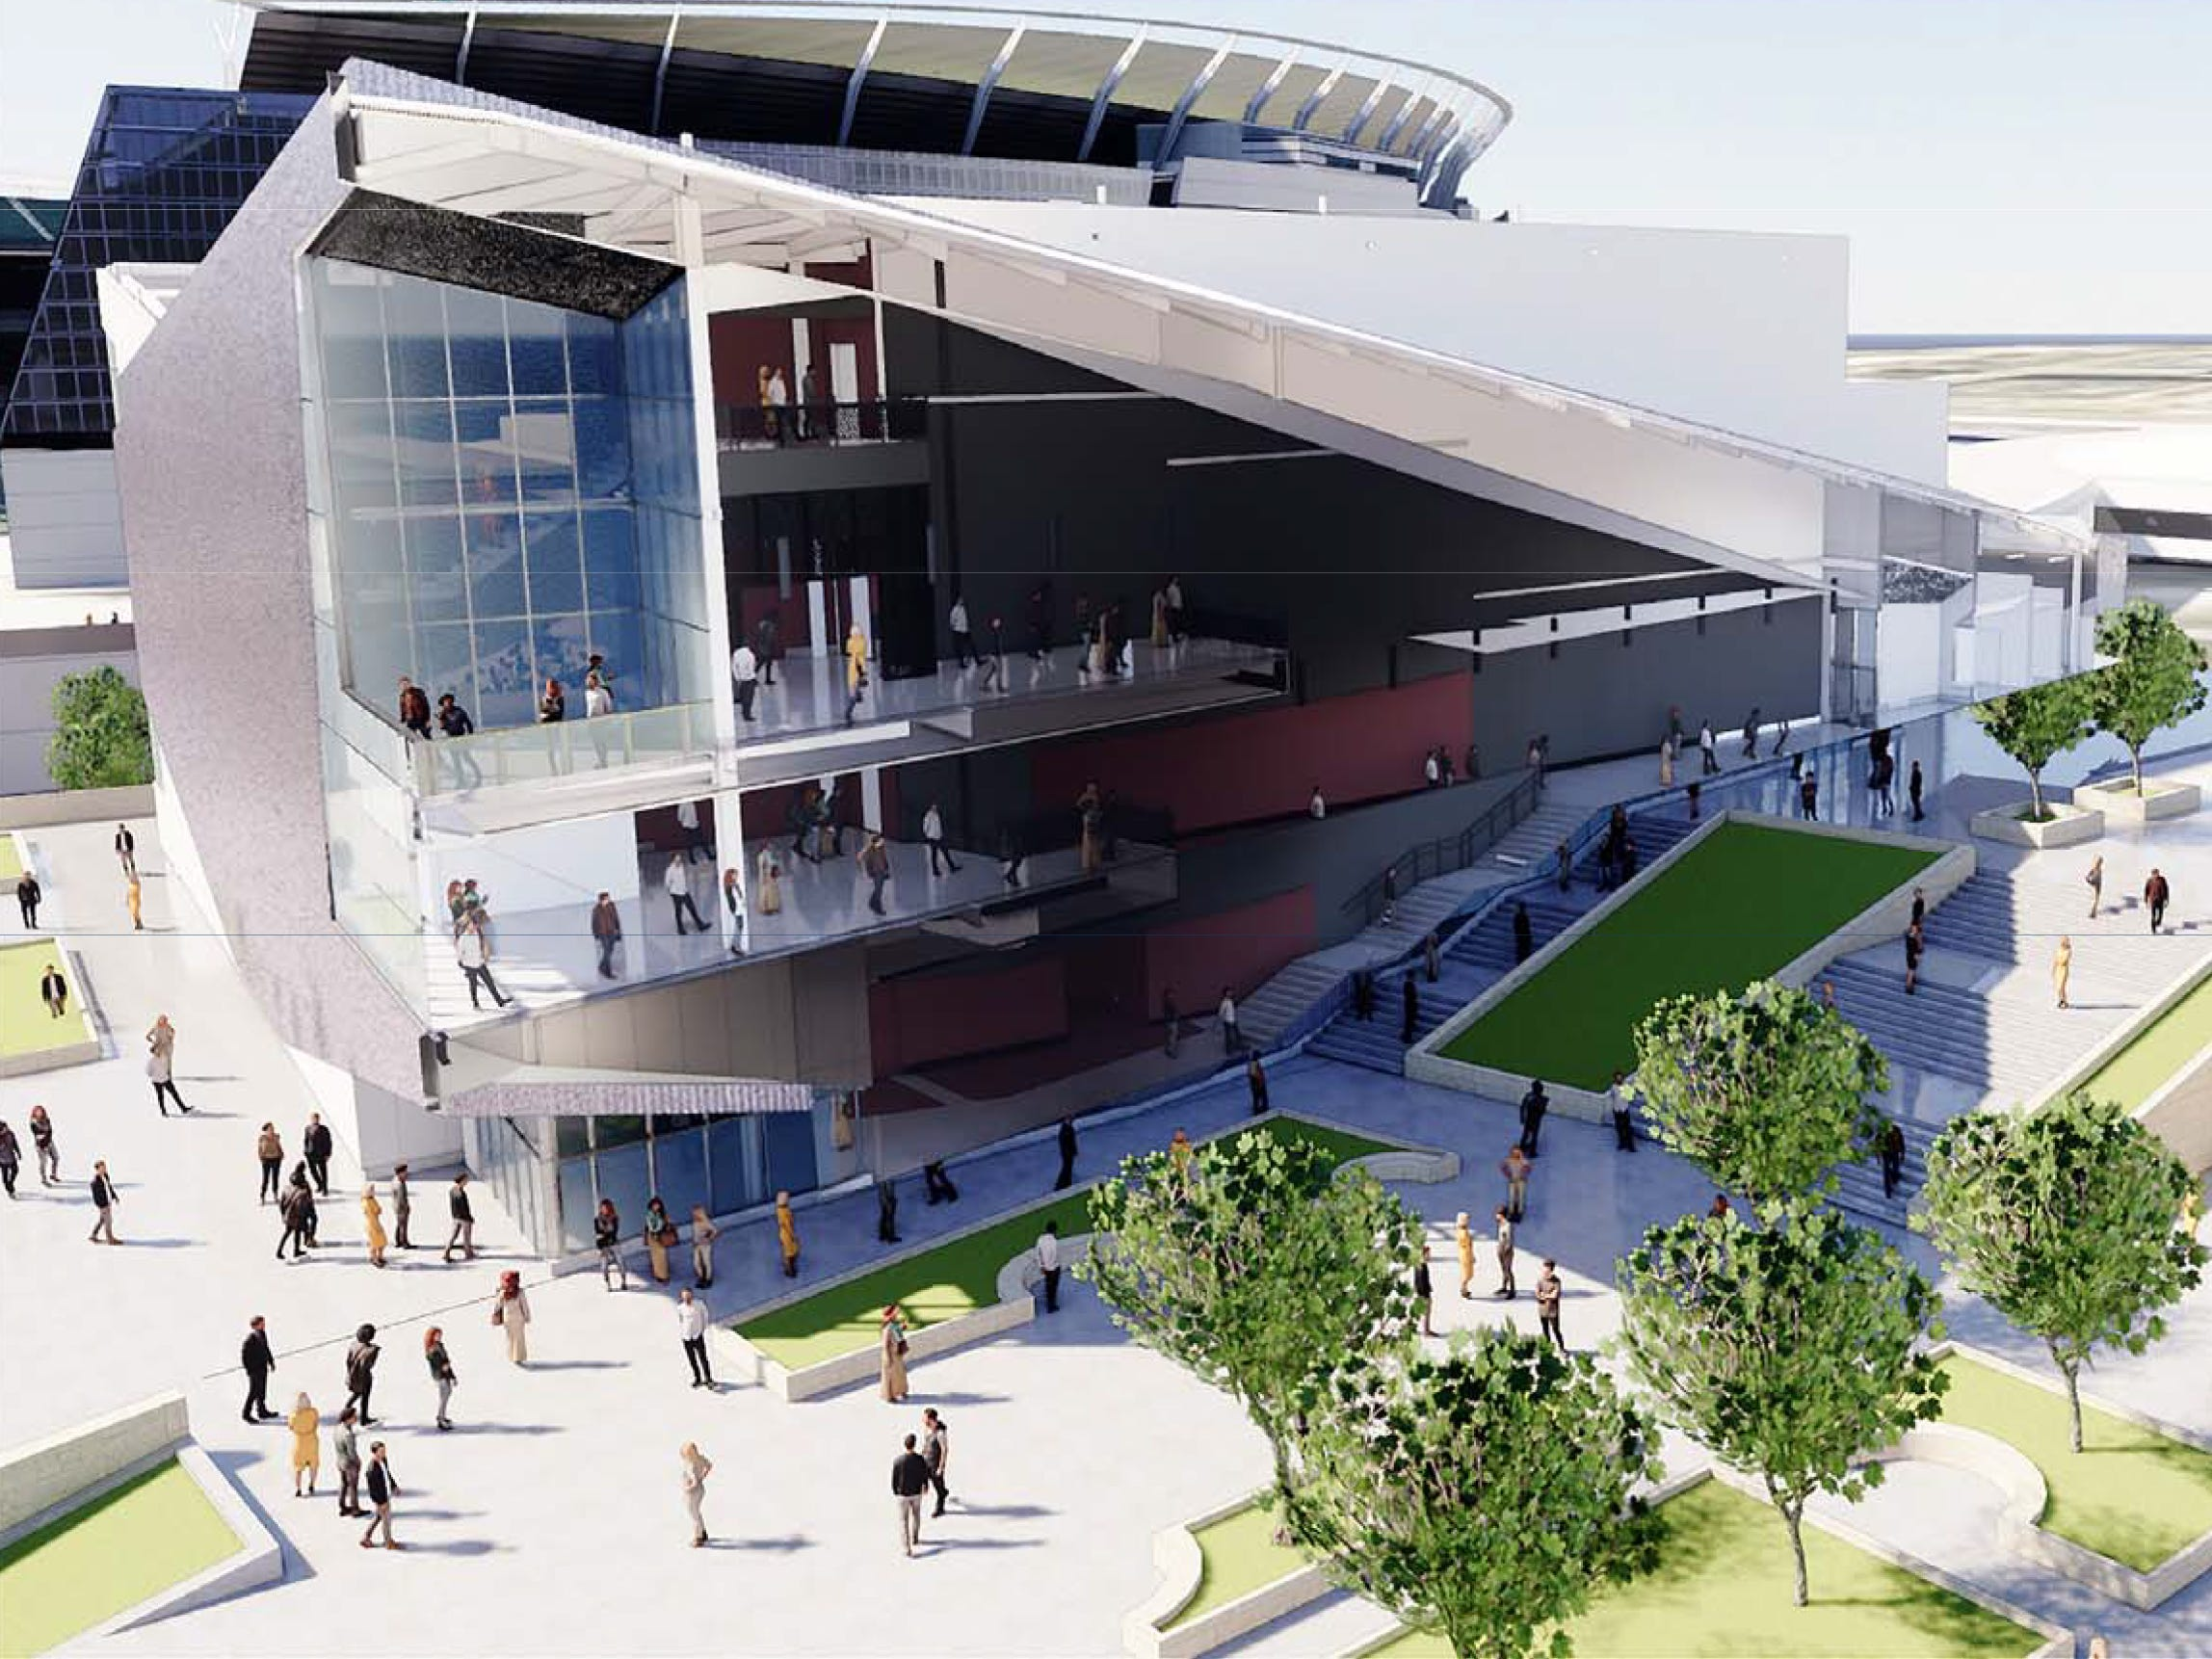 Hamilton County released in the past week the most up-to-date renderings of the music venue at The Banks. The Cincinnati Symphony Orchestra will build the venue on a lot adjacent to Paul Brown Stadium. Business owners at The Banks hope the venue will draw more people to the city's entertainment complex on the riverfront.